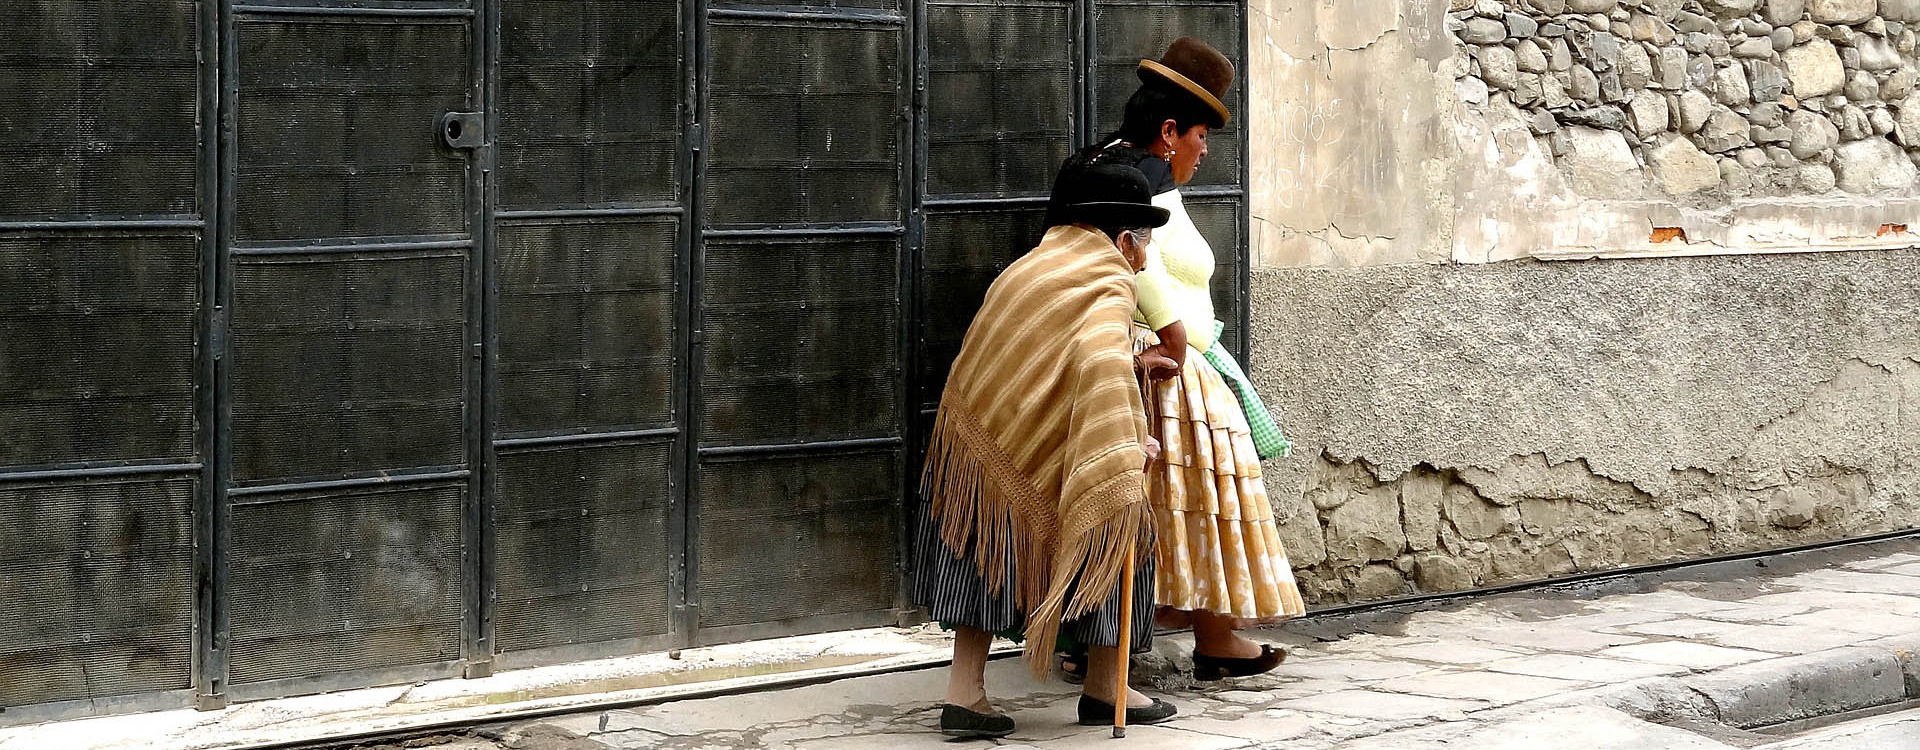 bolivien-rue-tradition